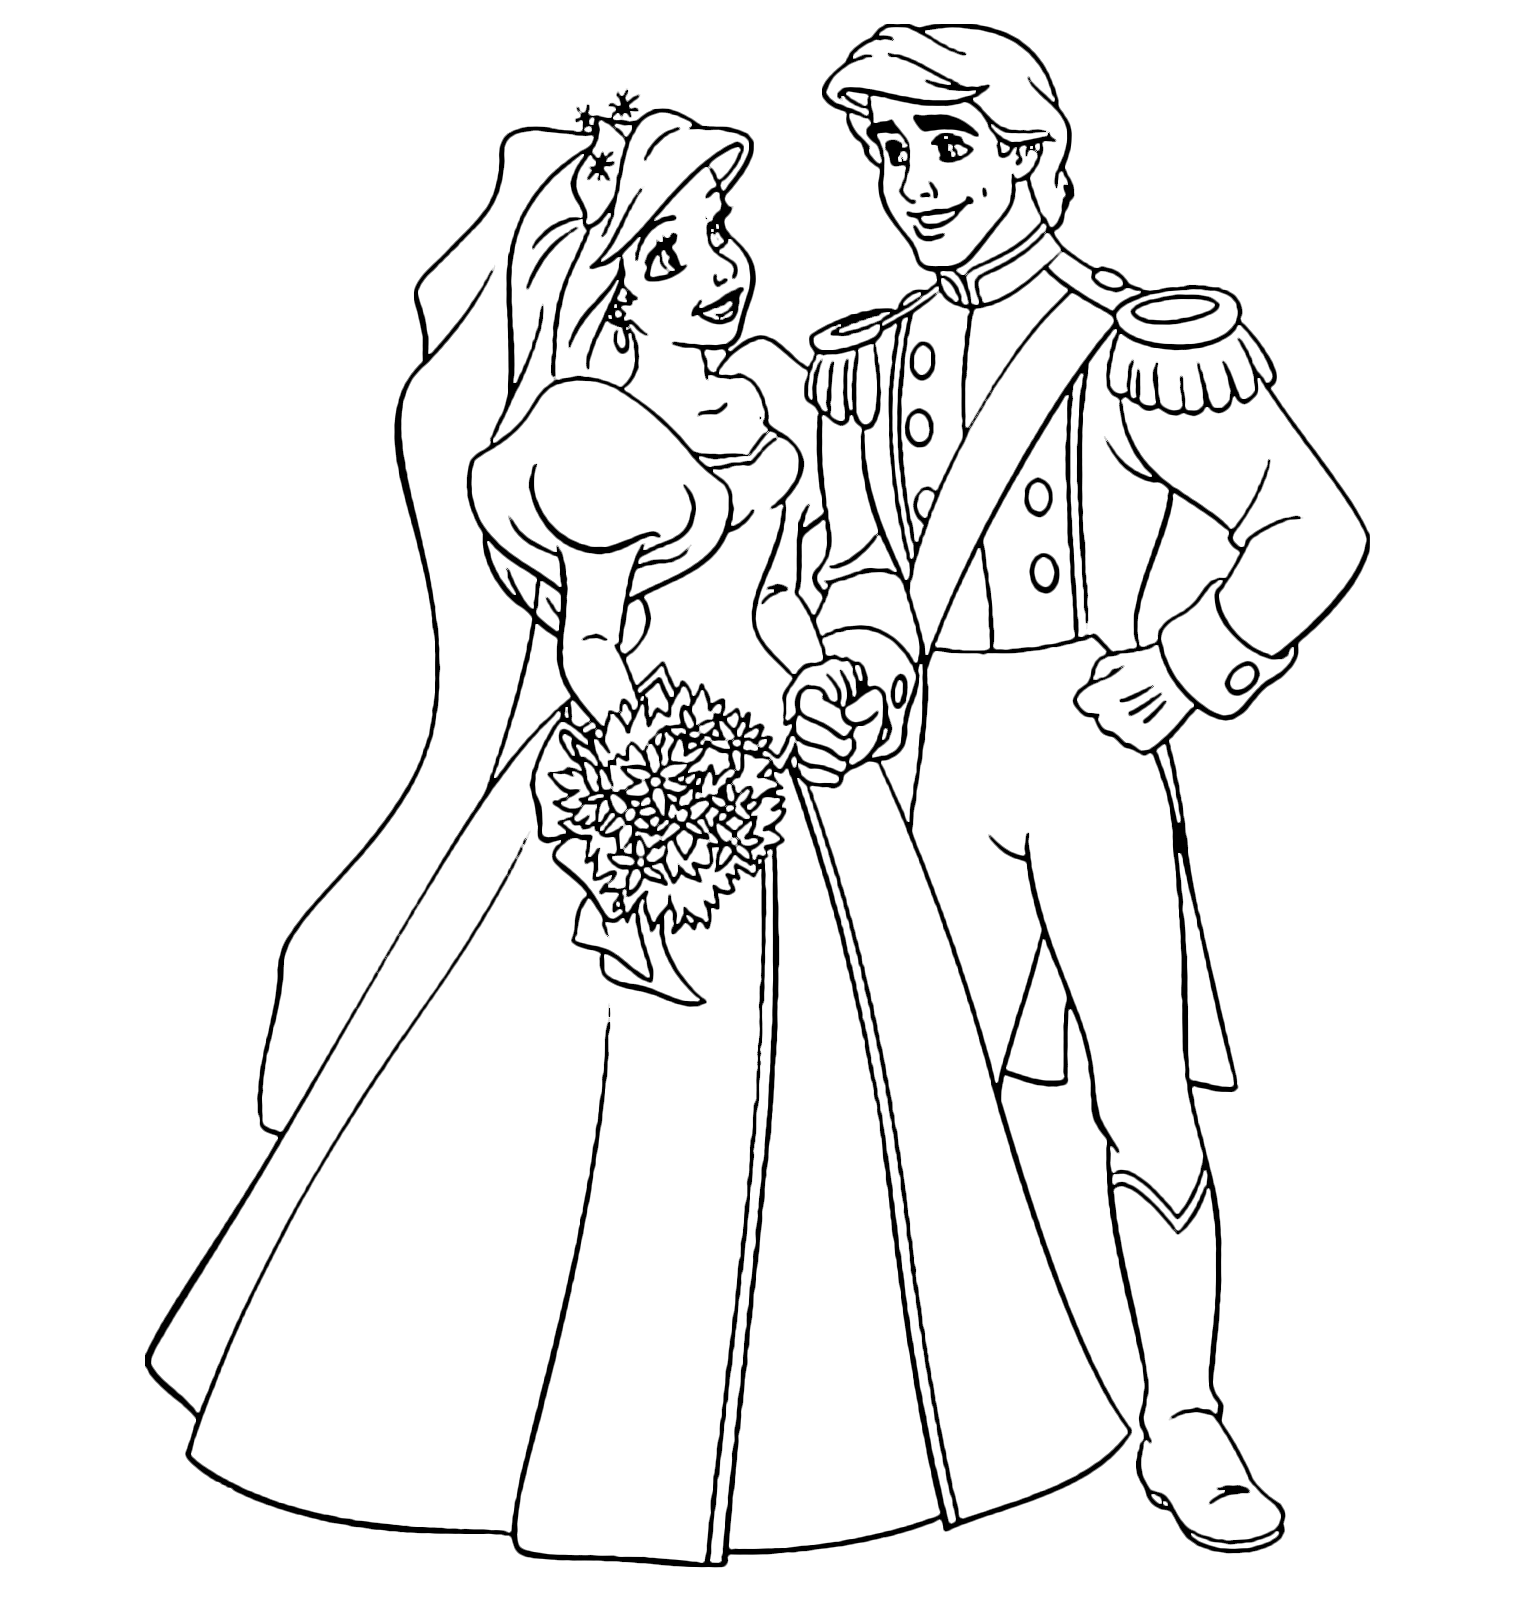 ariel and eric coloring pages princess and prince coloring pages princess coloring and ariel pages eric coloring